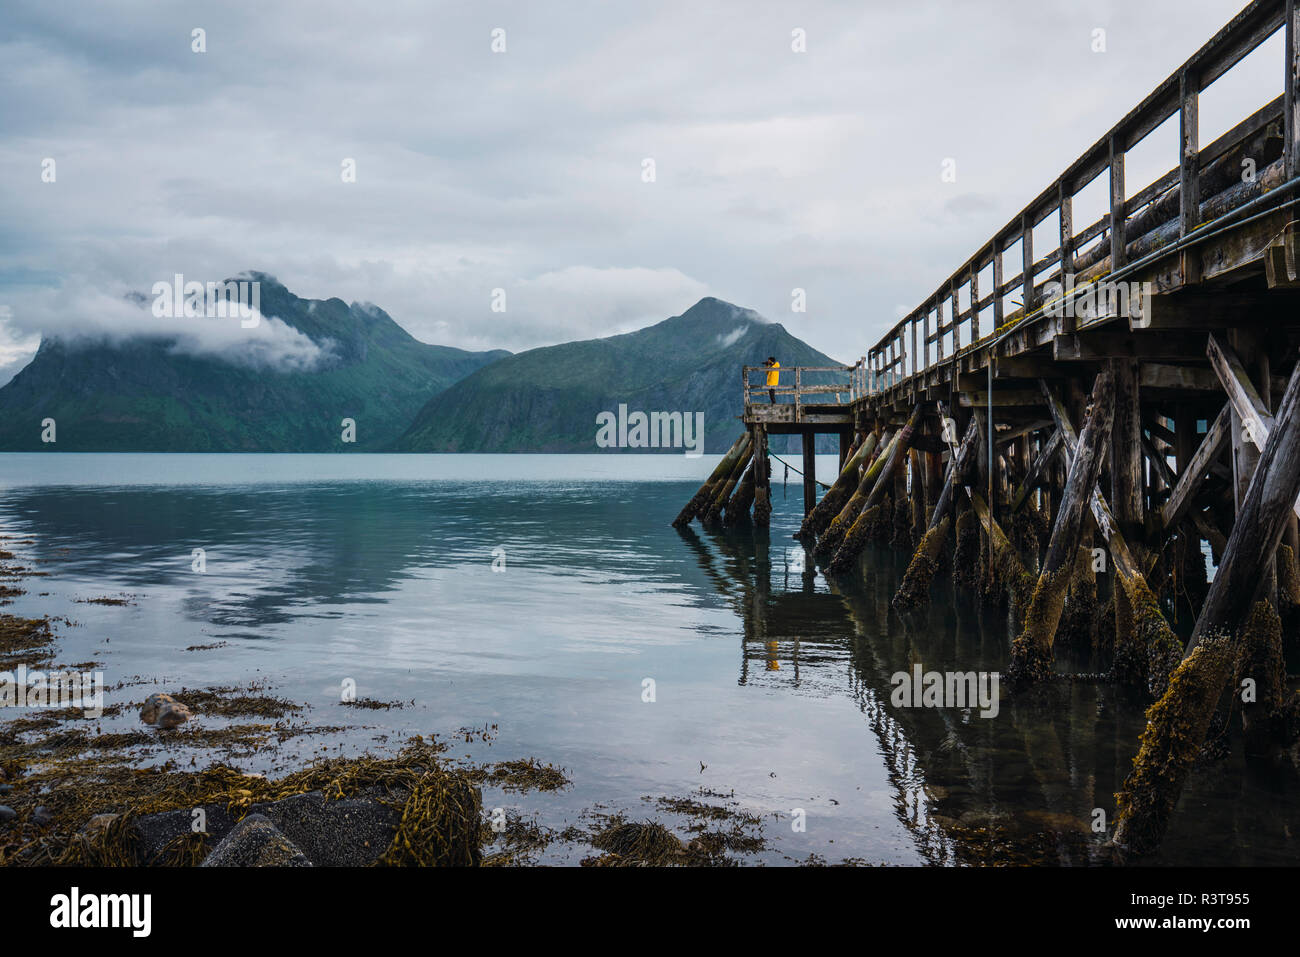 Norway, Senja island, man standing on a jetty at the coast - Stock Image